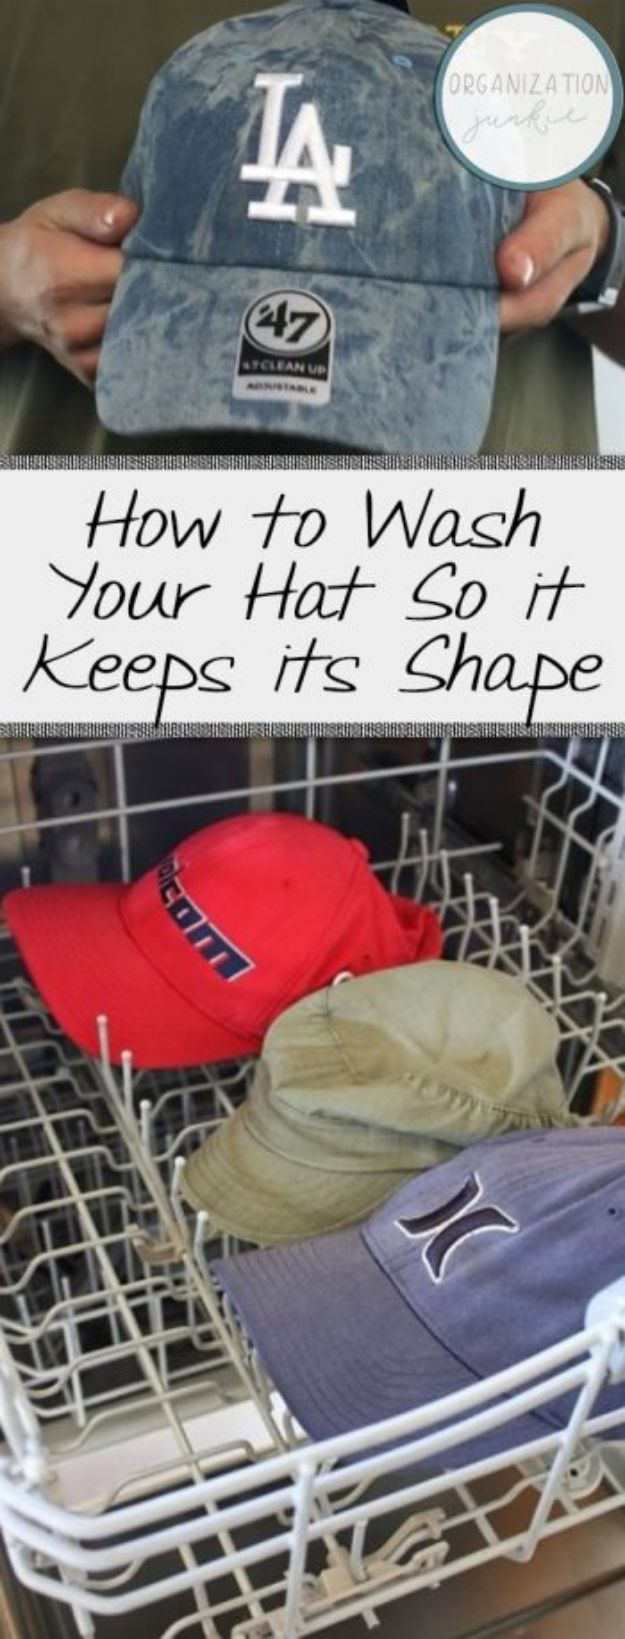 Laundry Hacks - Wash Your Hat So it Keeps its Shape - Cool Tips for Busy Moms and Laundry Lifehacks - Laundry Room Organizing Ideas, Storage and Makeover - Folding, Drying, Cleaning and Stain Removal Tips for Clothes - How to Remove Stains, Paint, Ink and Smells - Whitening Tricks and Solutions - DIY Products and Recipes for Clothing Soaps http://diyjoy.com/laundry-hacks